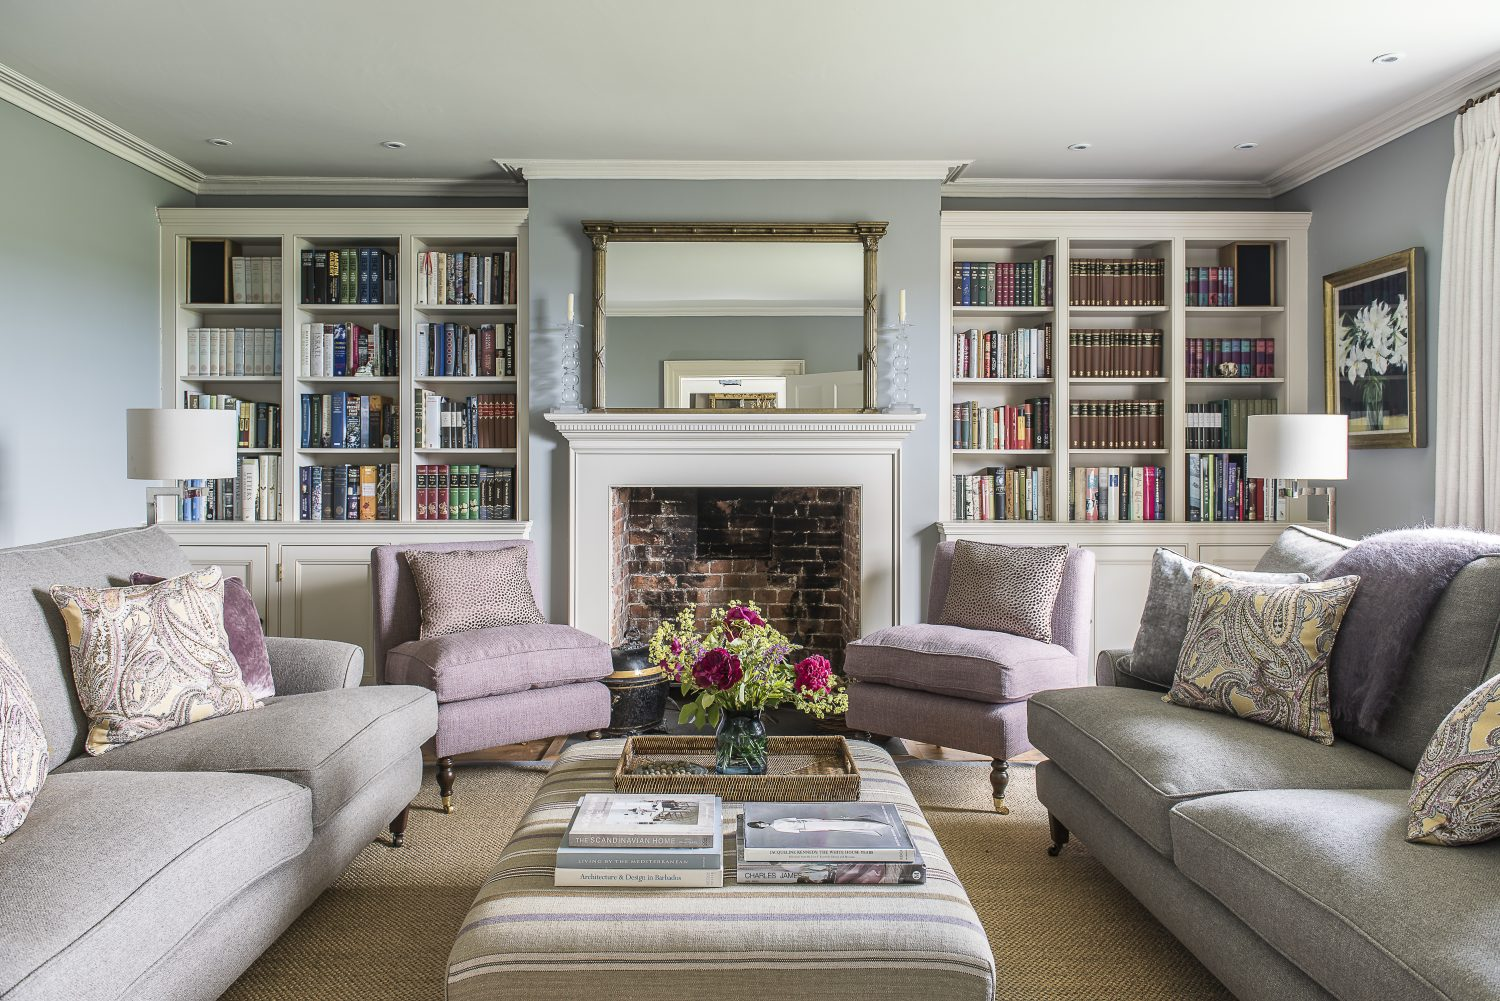 More bookshelves in the drawing room. The oversized ottoman is upholstered in a William Yerwood jute stripe. The patterned cushions are a Nina Campbell linen. The brass lamp is by Porto Romana. The painting client's own